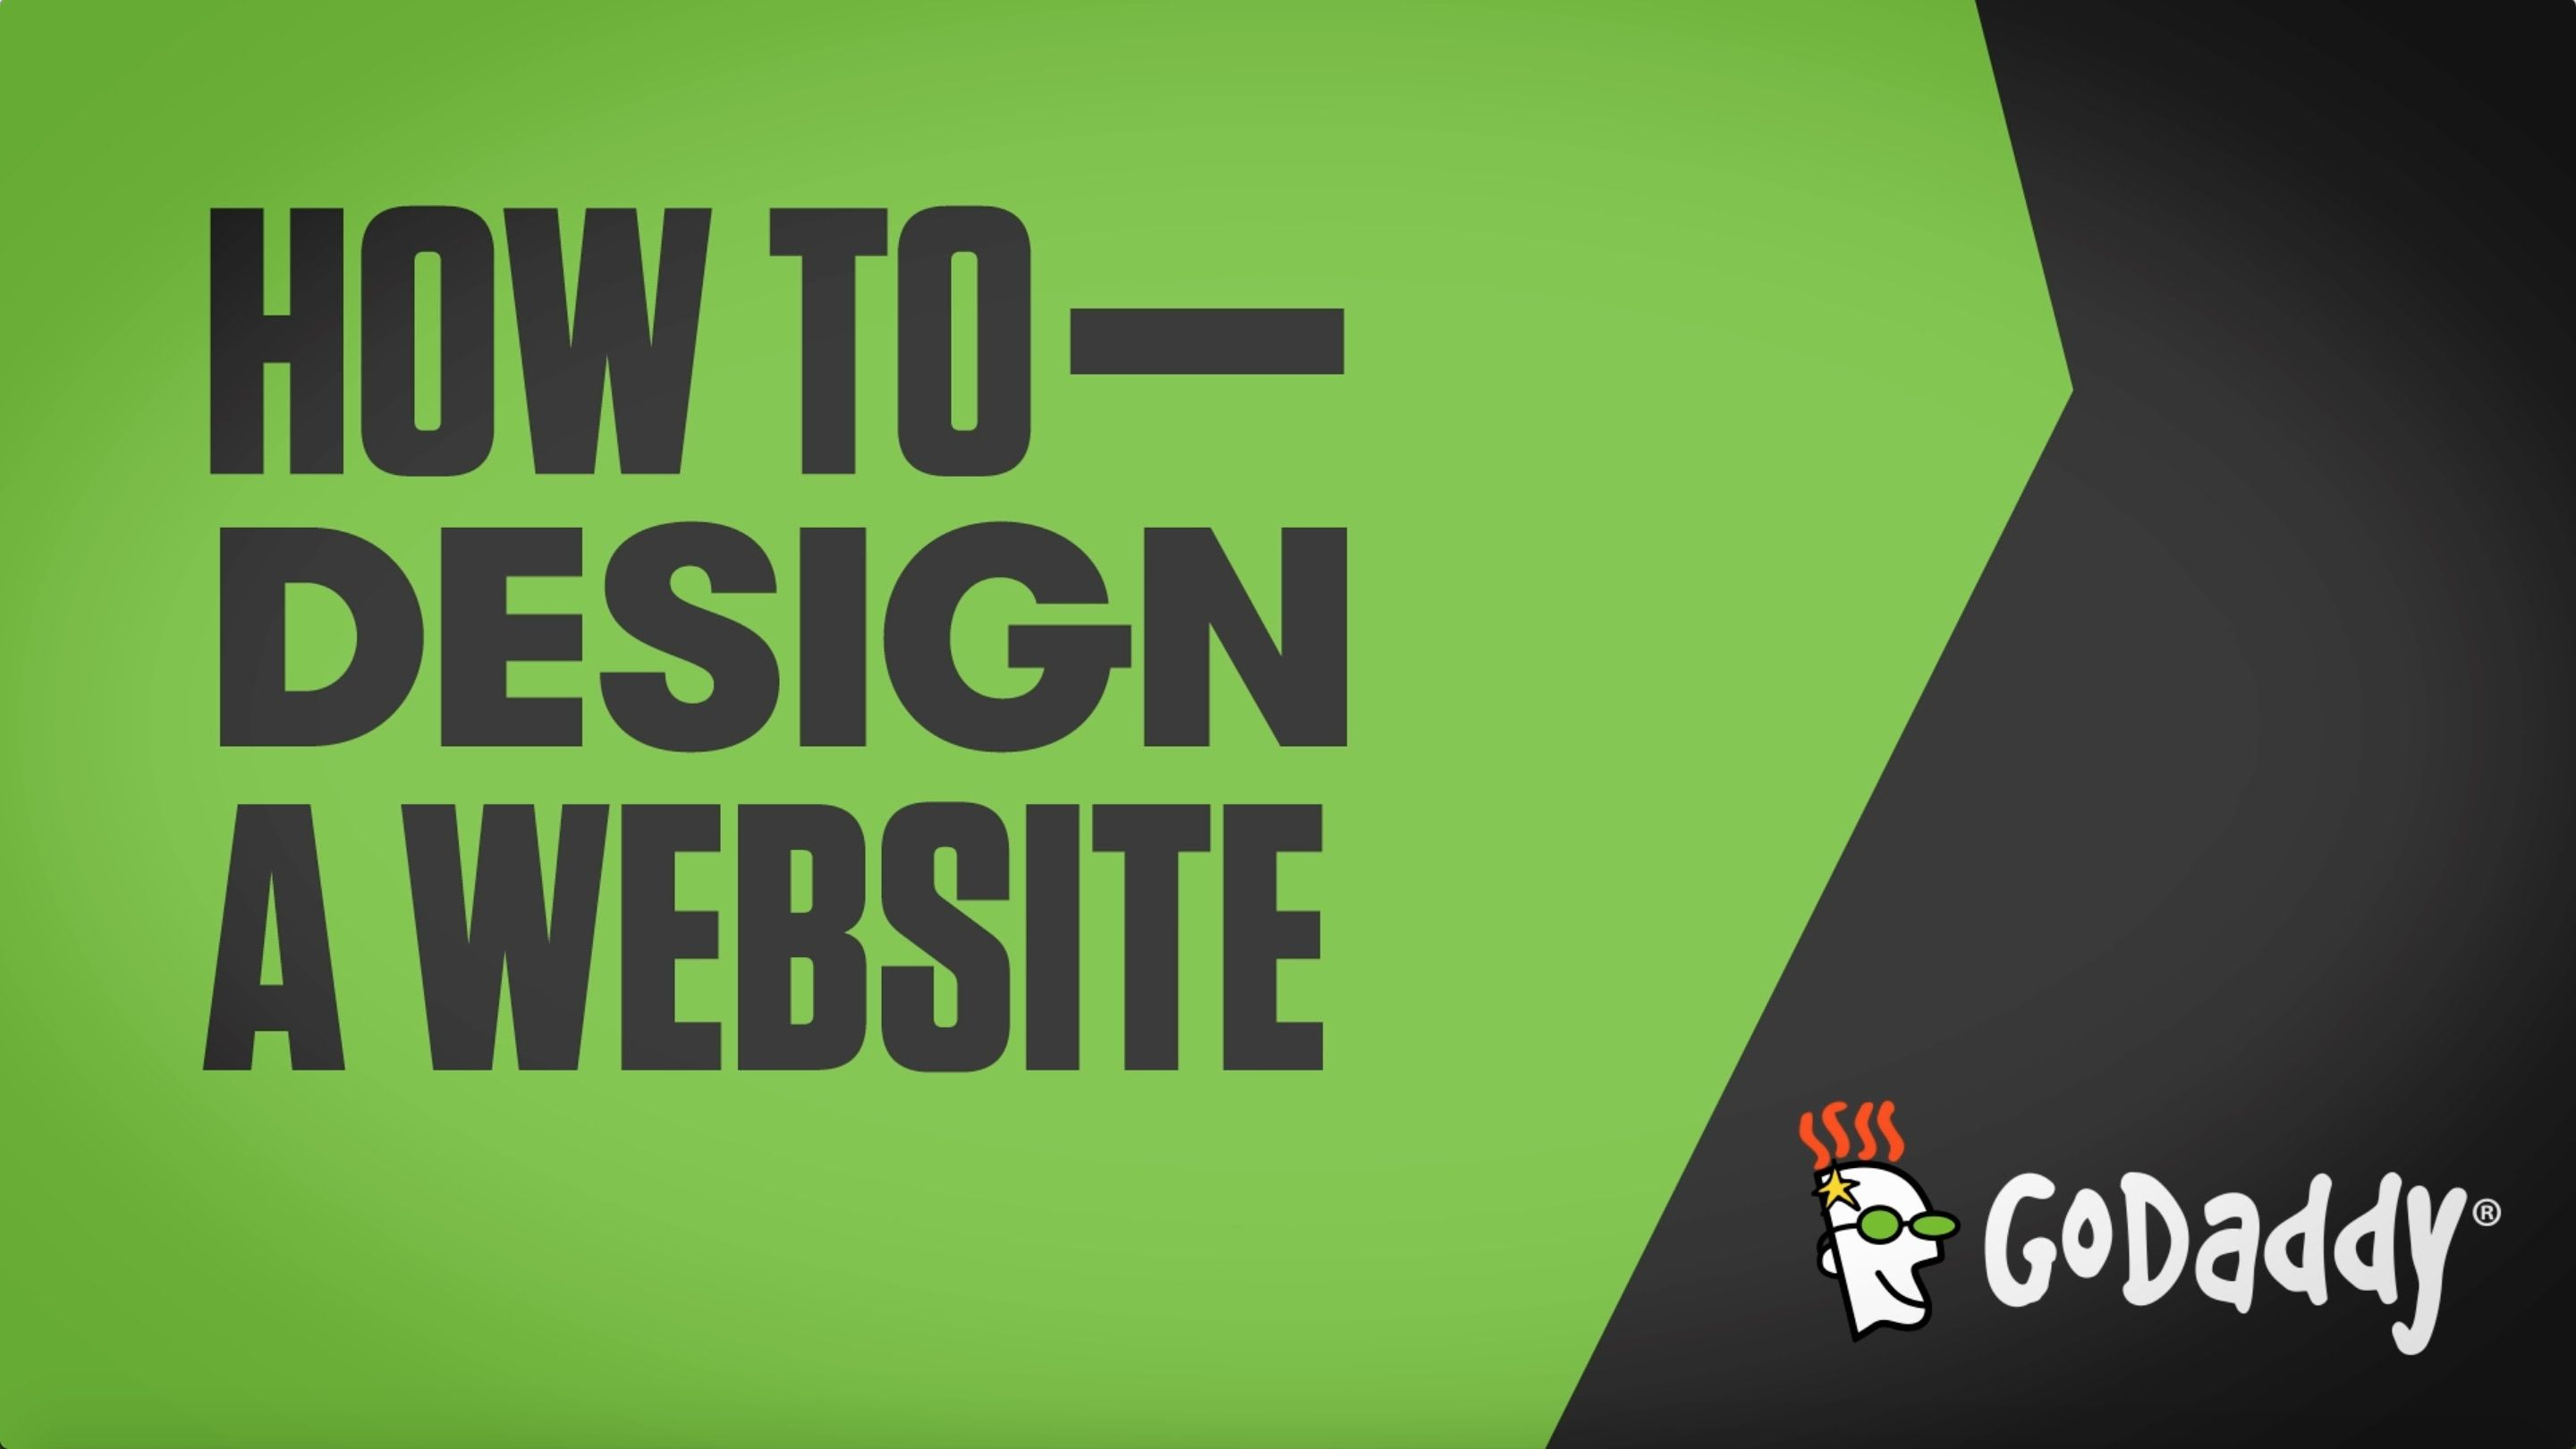 Learn how to design a website with guidance and advice from